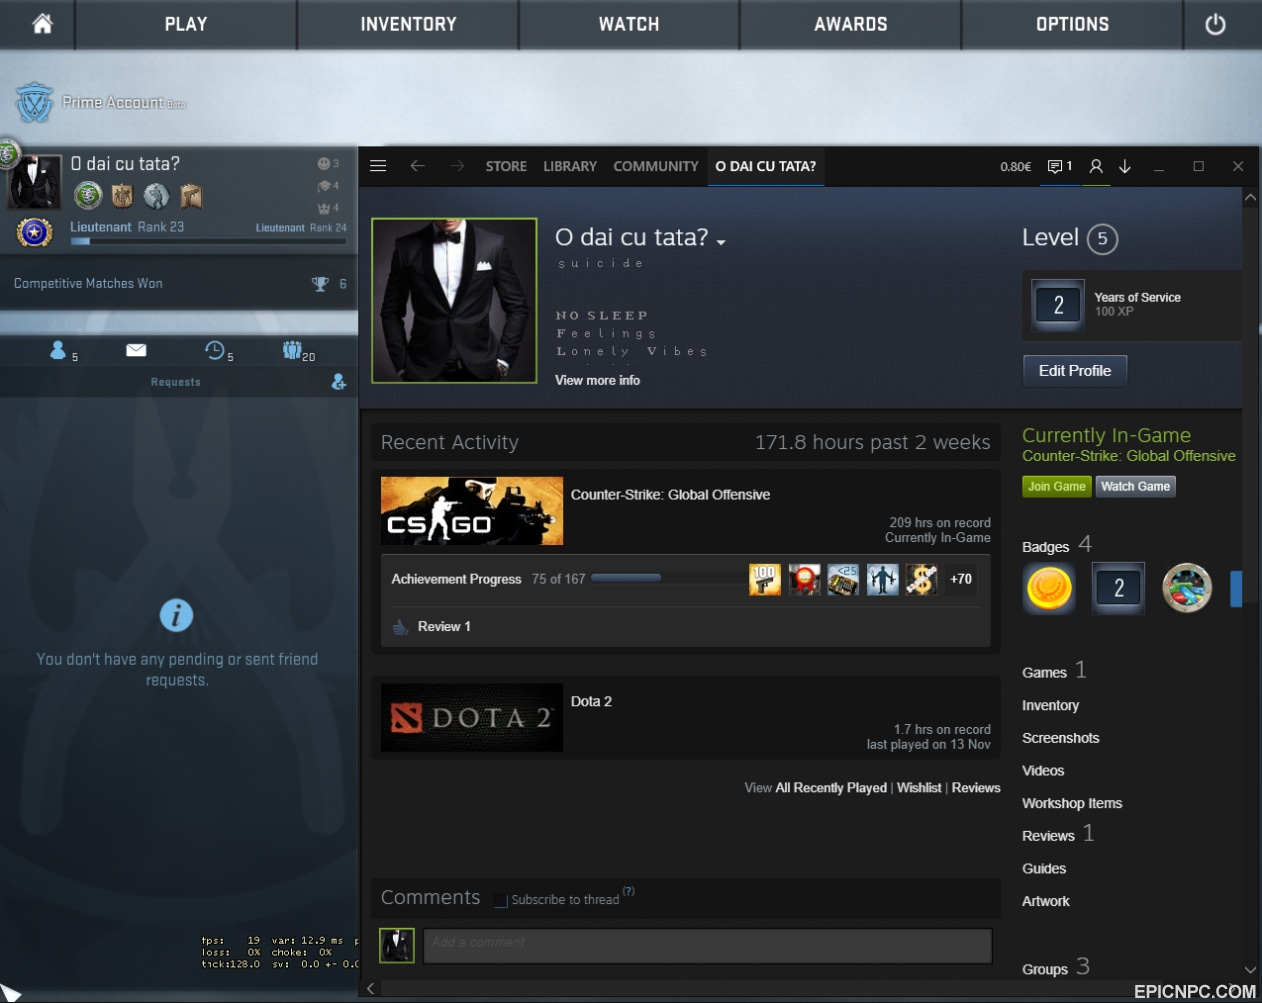 Hairy Sell Cs Go Diamonds Hack Csgo Diamond Strategy Euro Diamond Operation Hydra Coin Prime Accounts Account Private Rank Rank Years On Steam Marketenabled wedding diamonds Cs Go Diamond